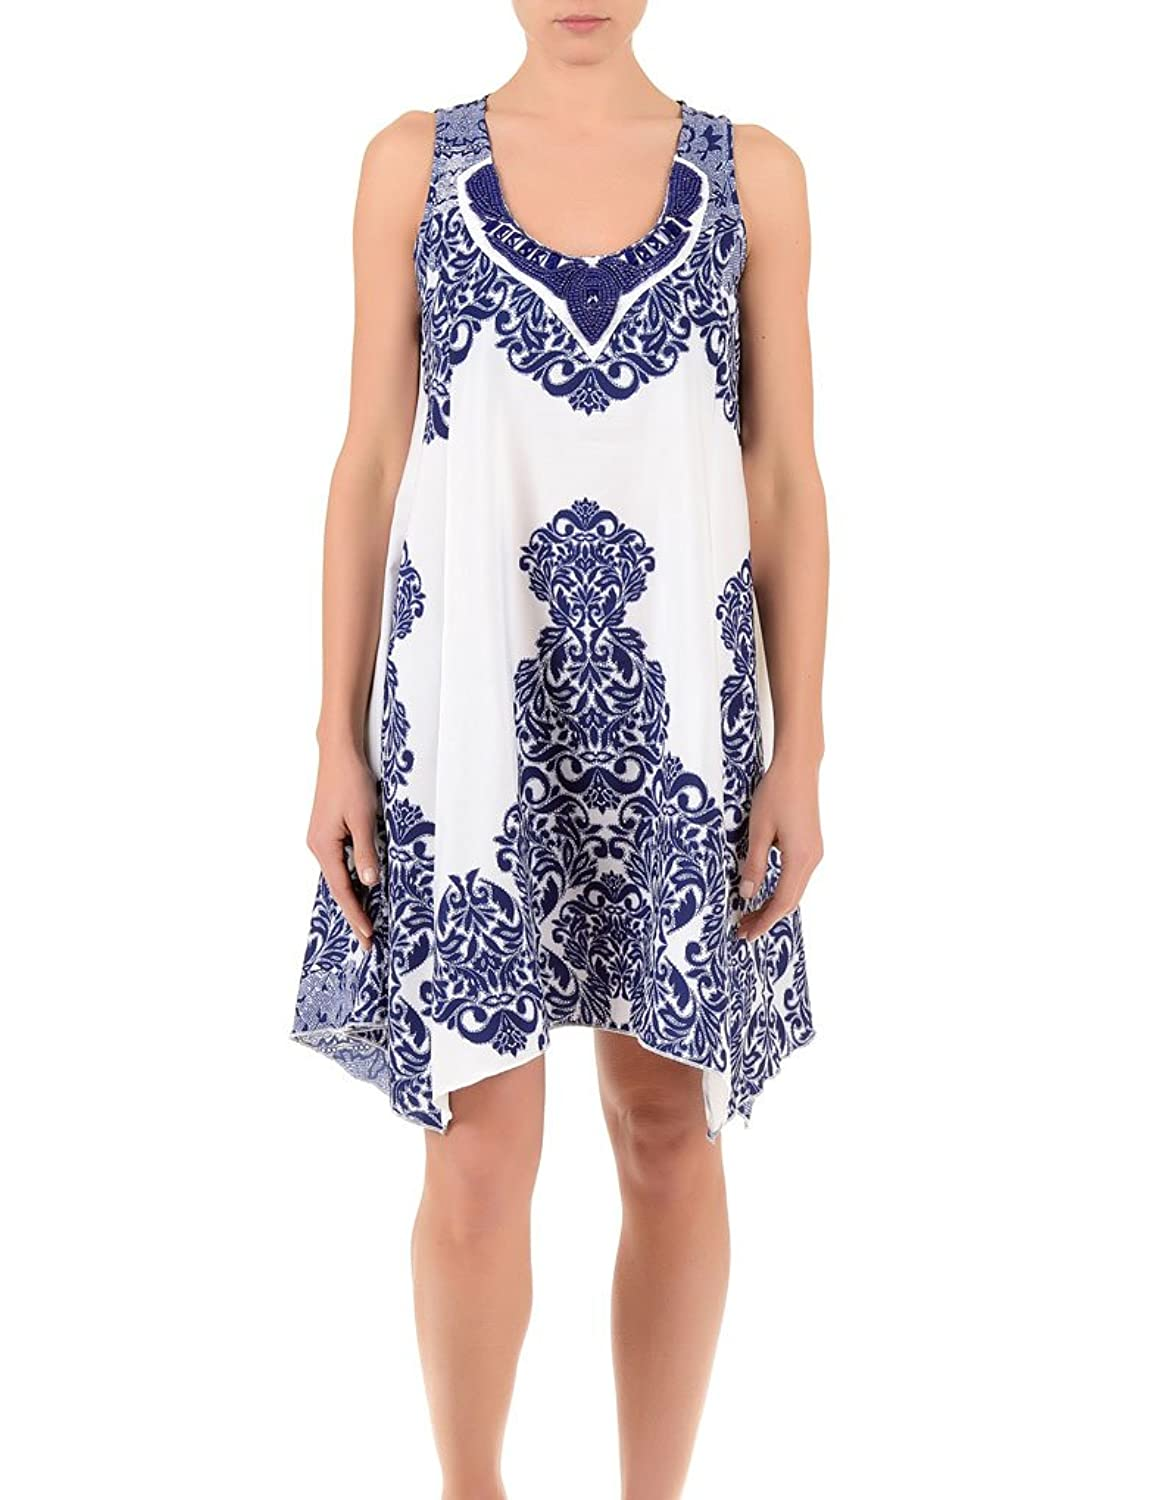 Iconique IC7-089 Women's White and Blue Floral Beach Dress